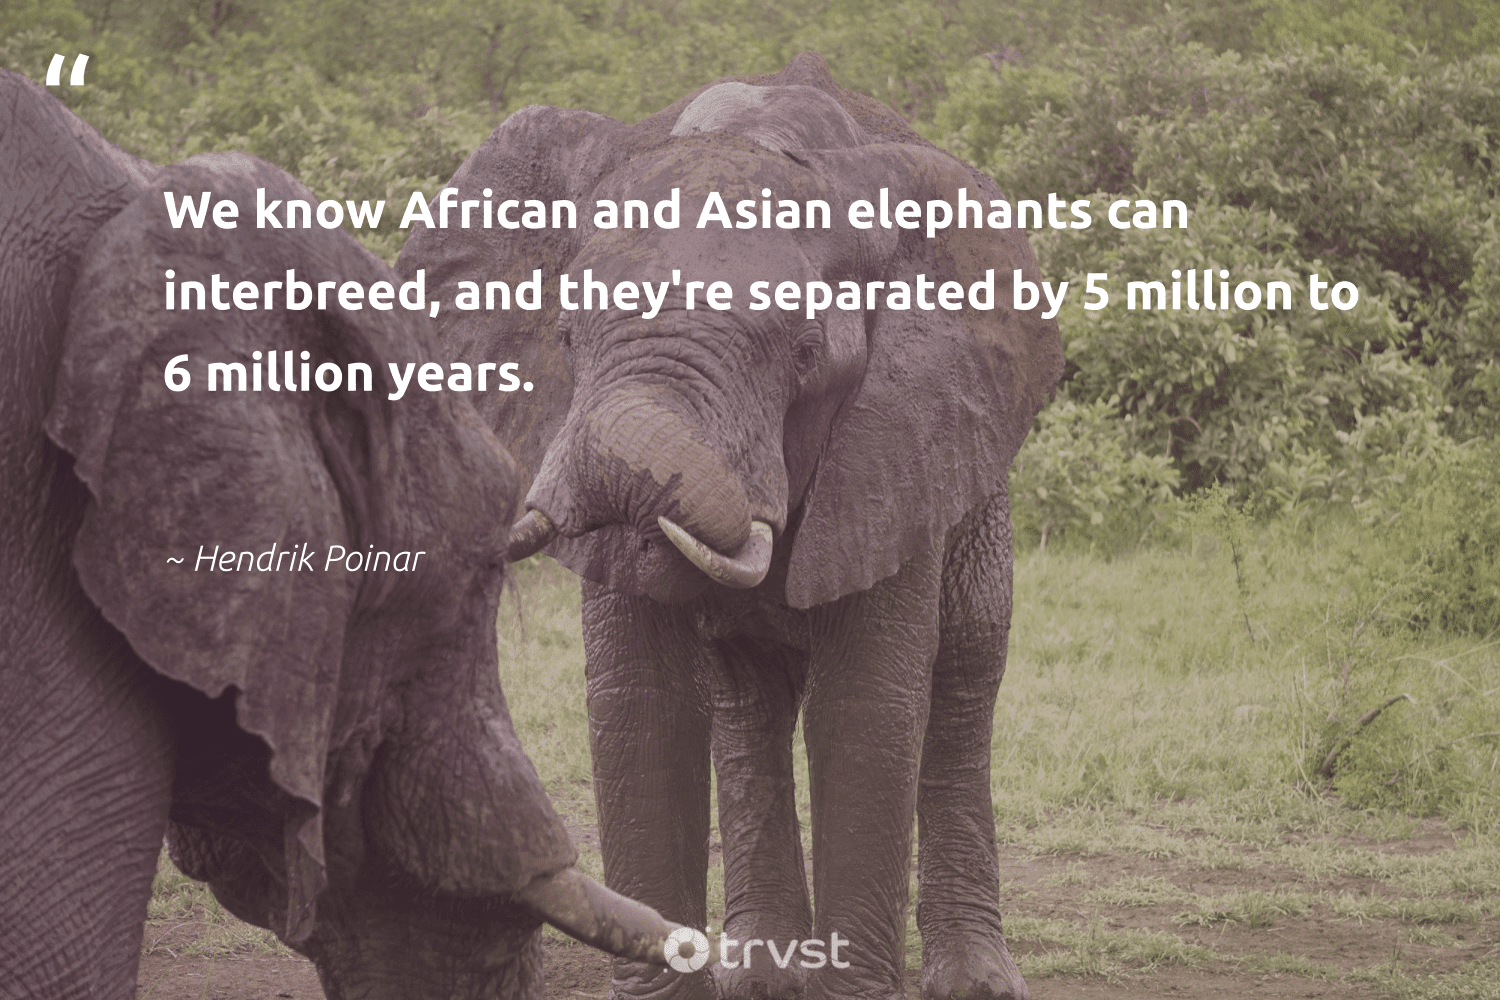 """""""We know African and Asian elephants can interbreed, and they're separated by 5 million to 6 million years.""""  - Hendrik Poinar #trvst #quotes #elephants #explore #collectiveaction #wildgeography #thinkgreen #endangered #dosomething #conservation #beinspired #elephant"""